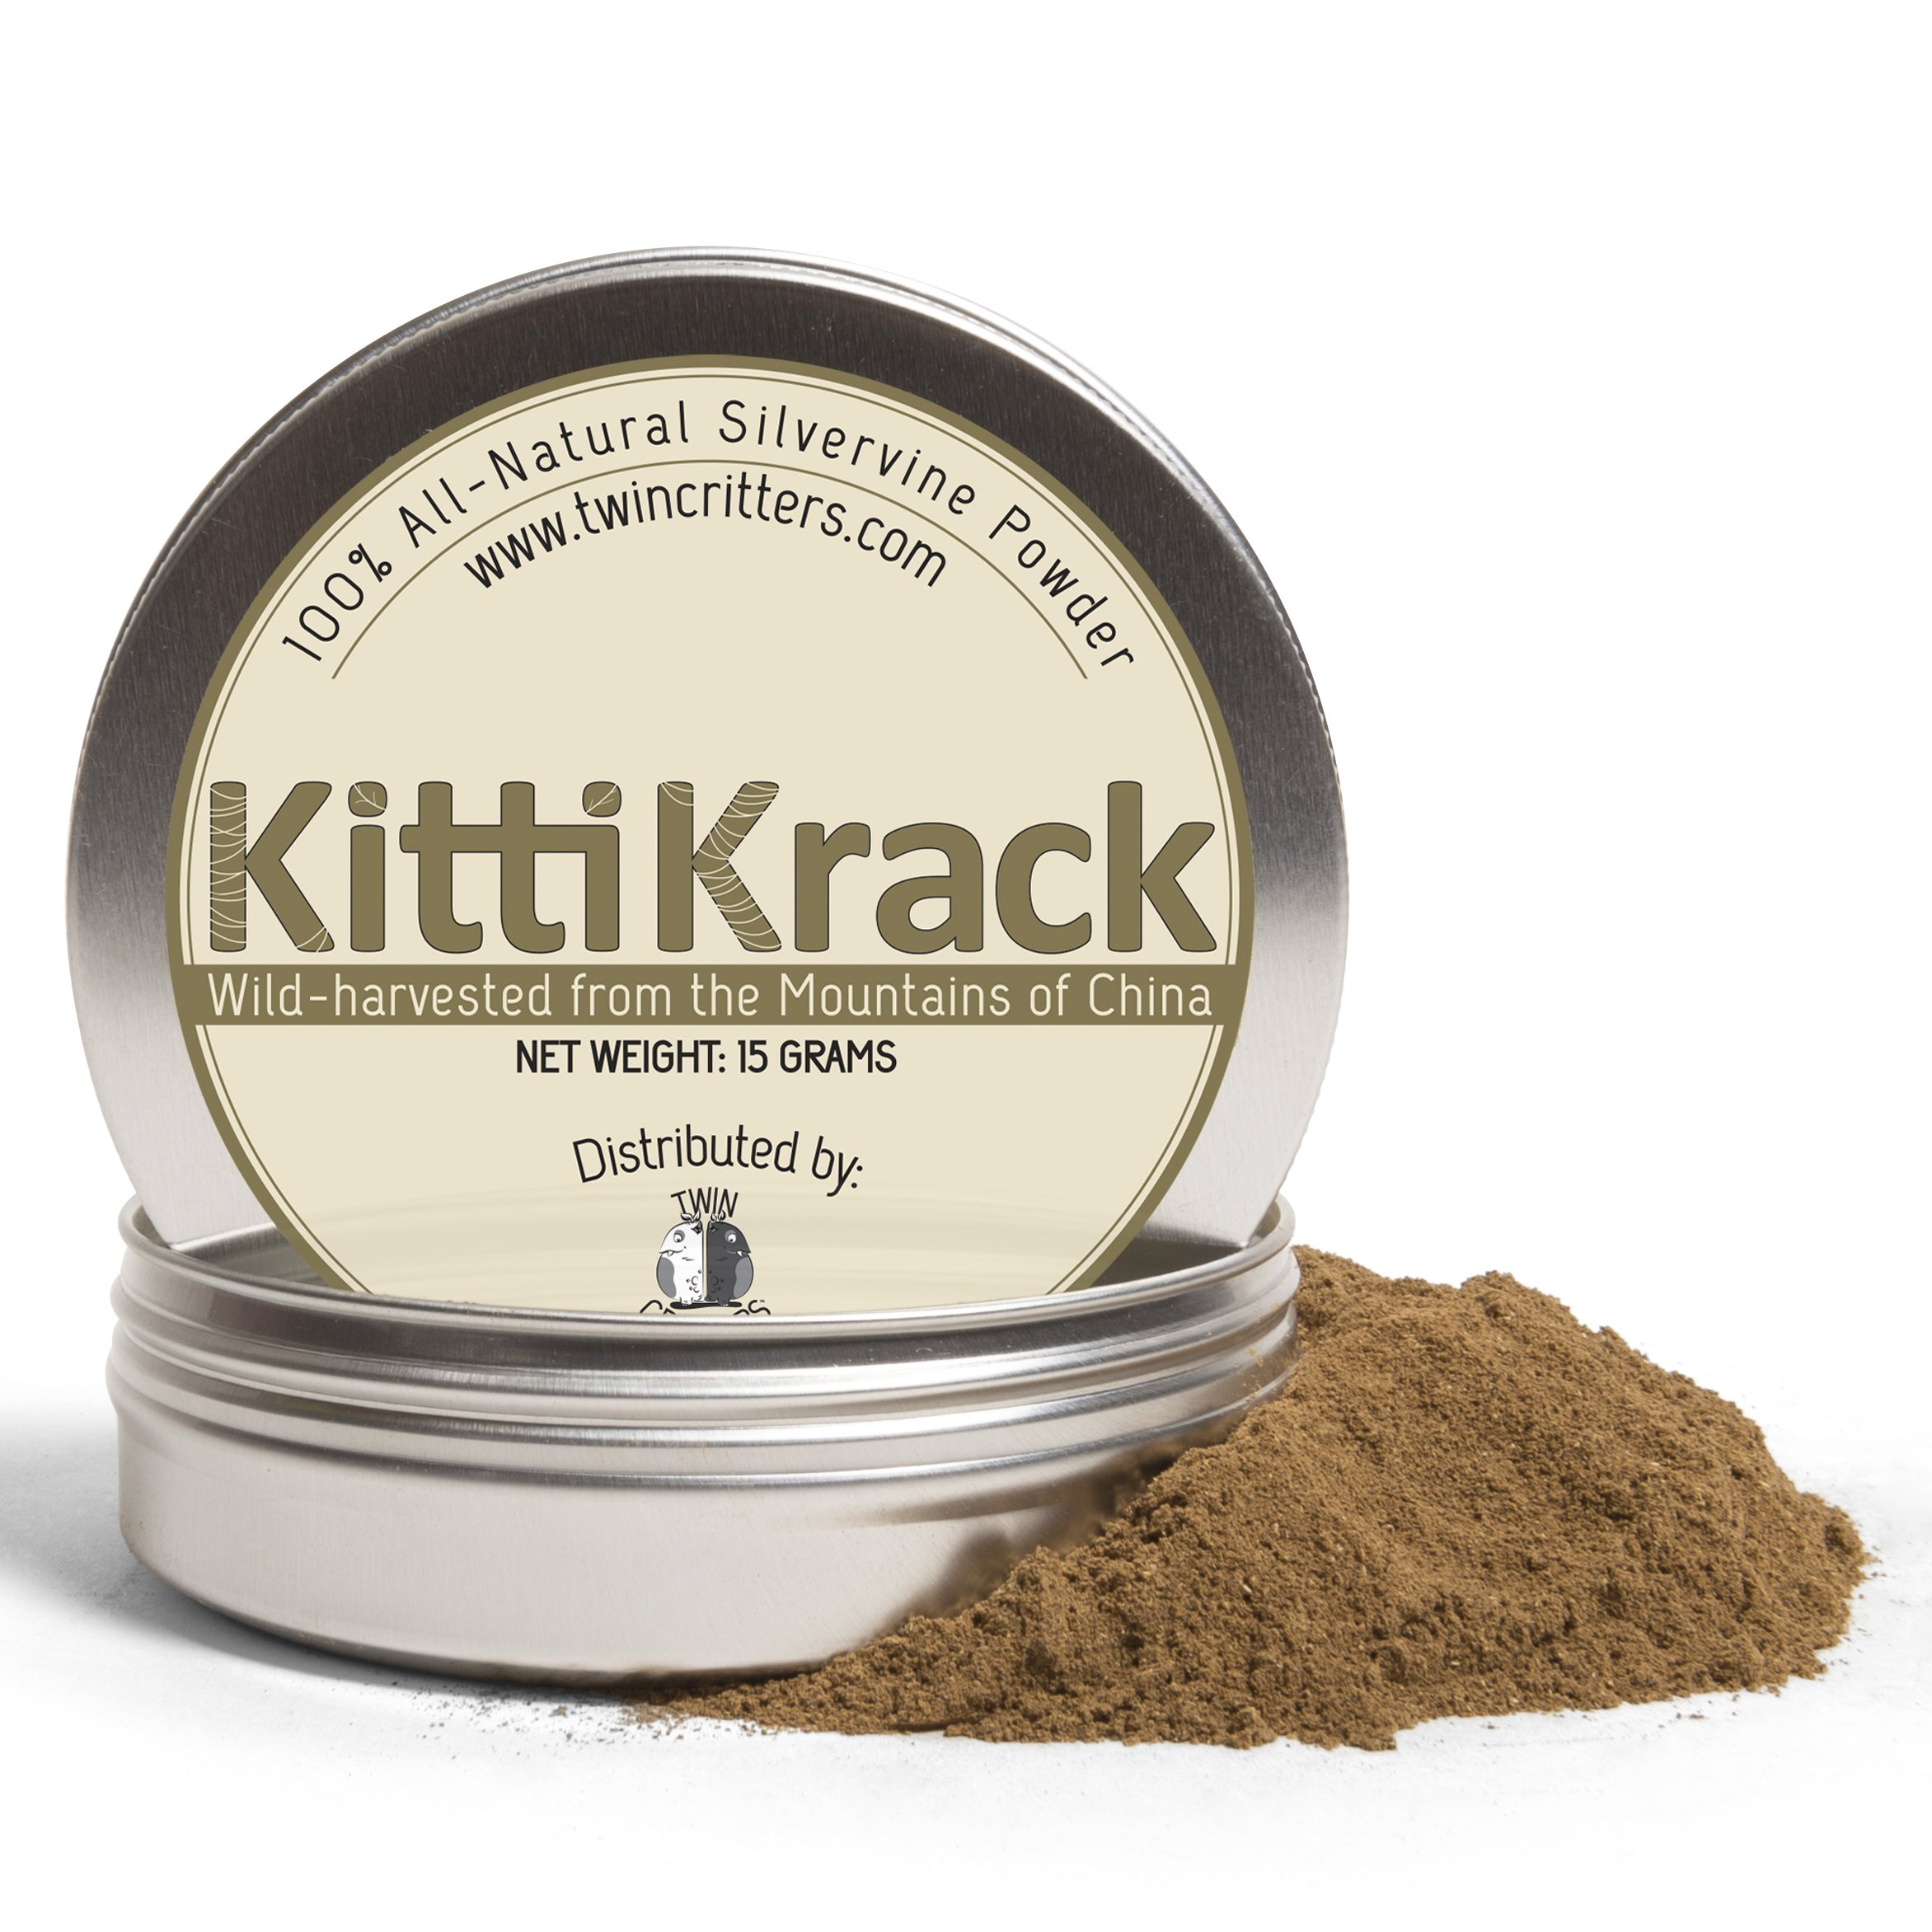 KittiKrack: Organic Silver Vine Catnip For Cats & Kittens By Twin Critters | 100%, All-Natural Silvervine Powder (15 grams)| Wild Harvested With No Additives Or Preservatives